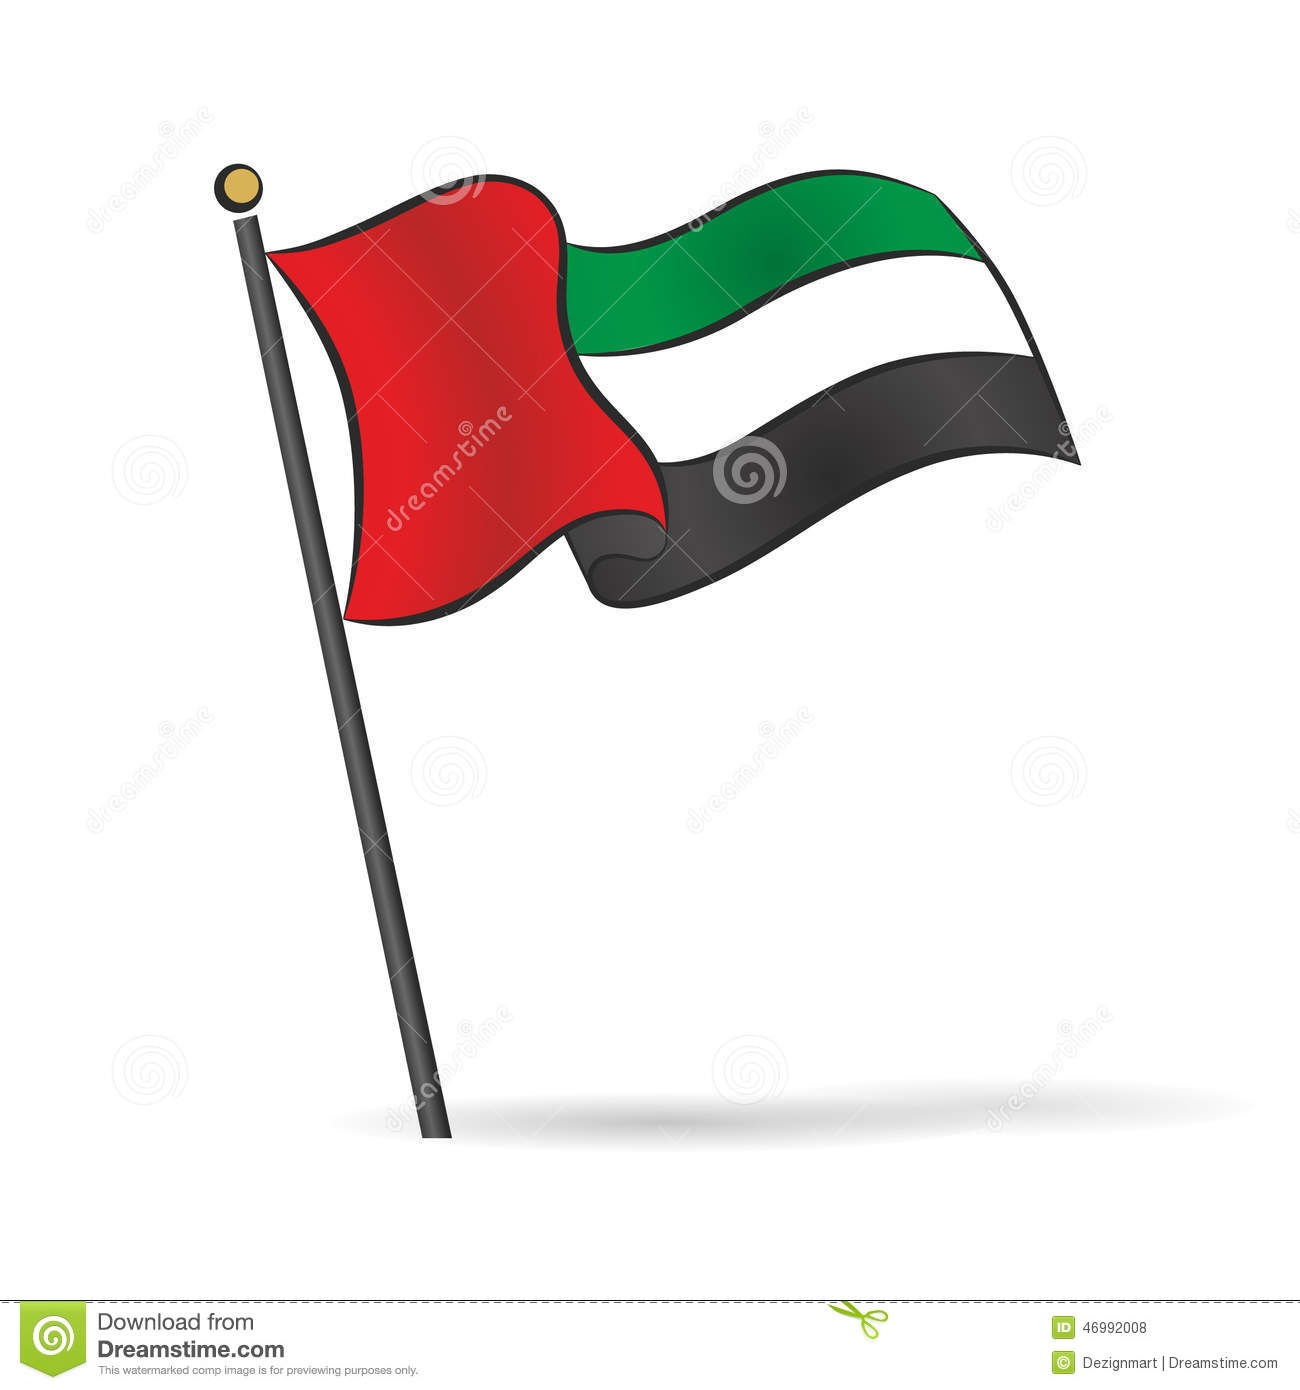 United arab emirates clipart #18